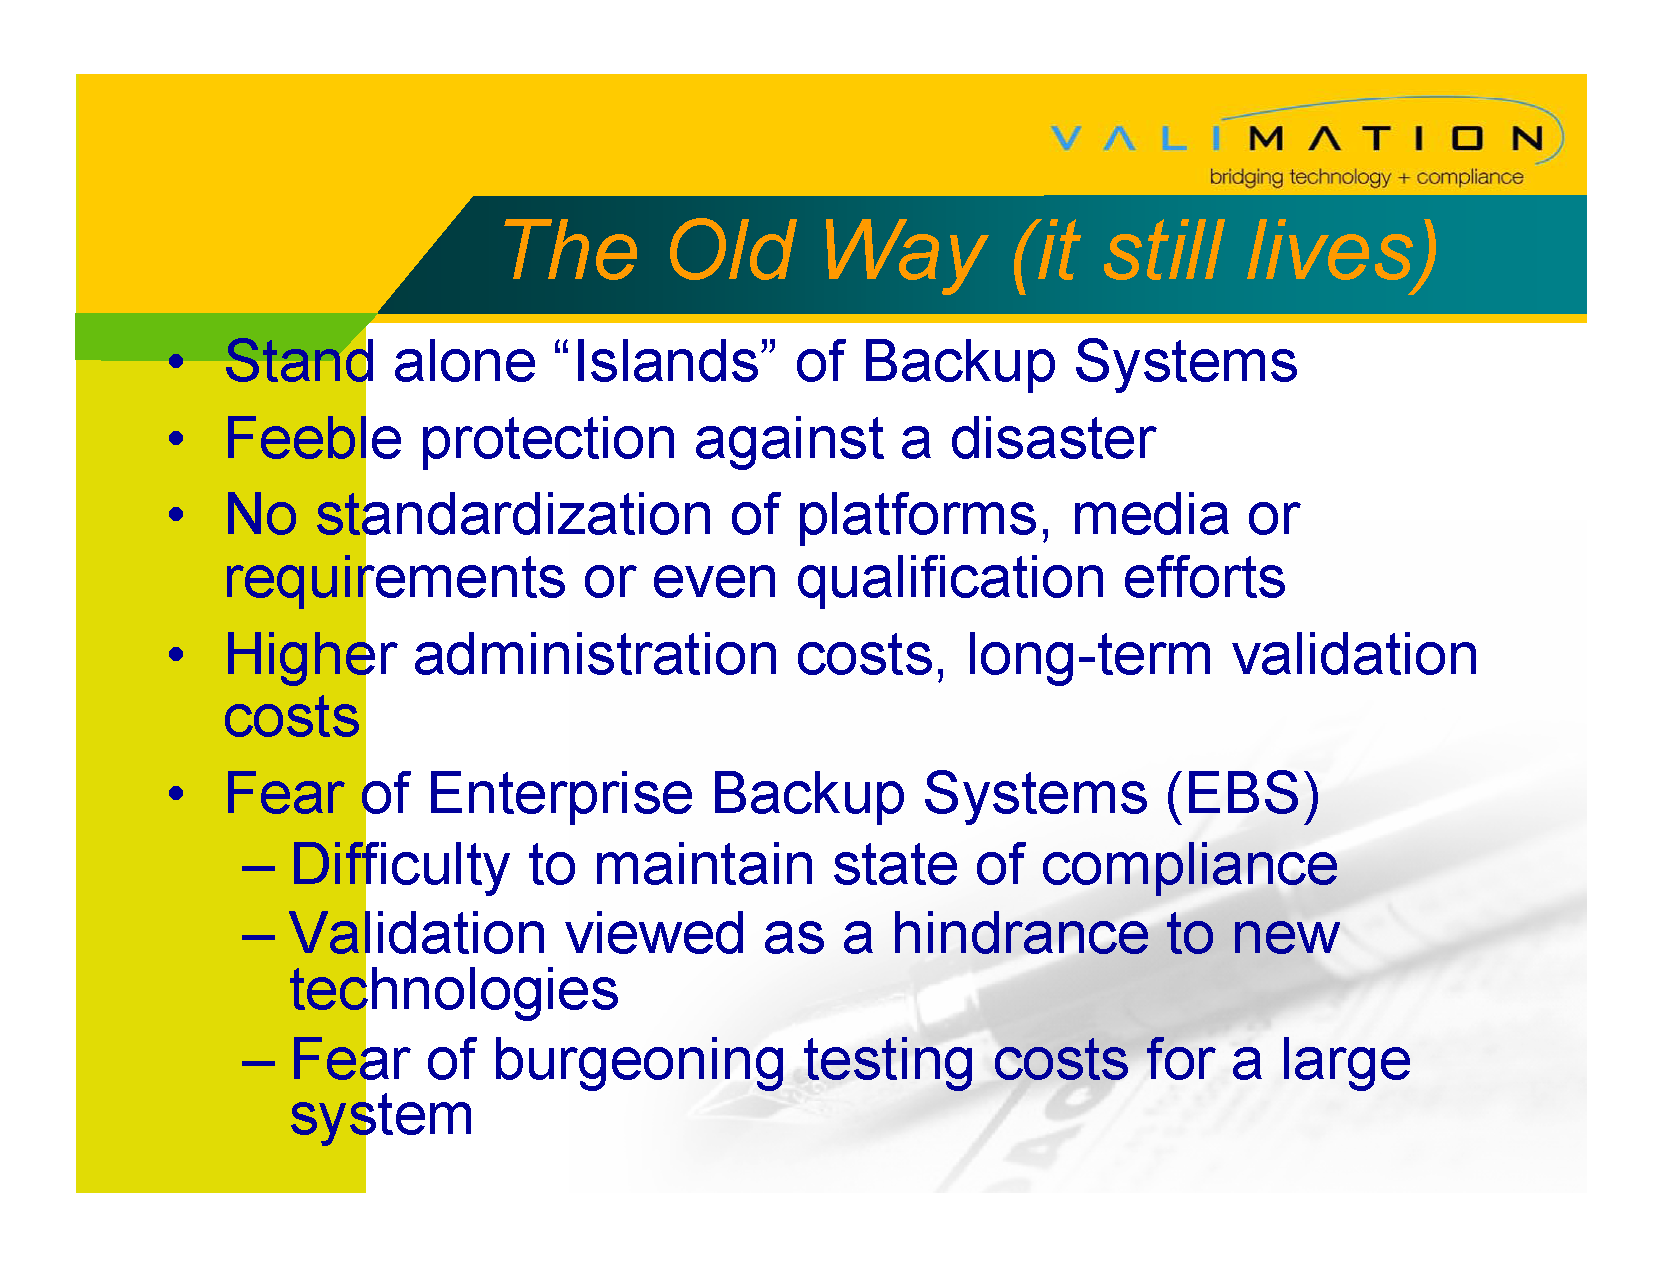 Validating an Enterprise Backup System by ValiMation_Page_03.png